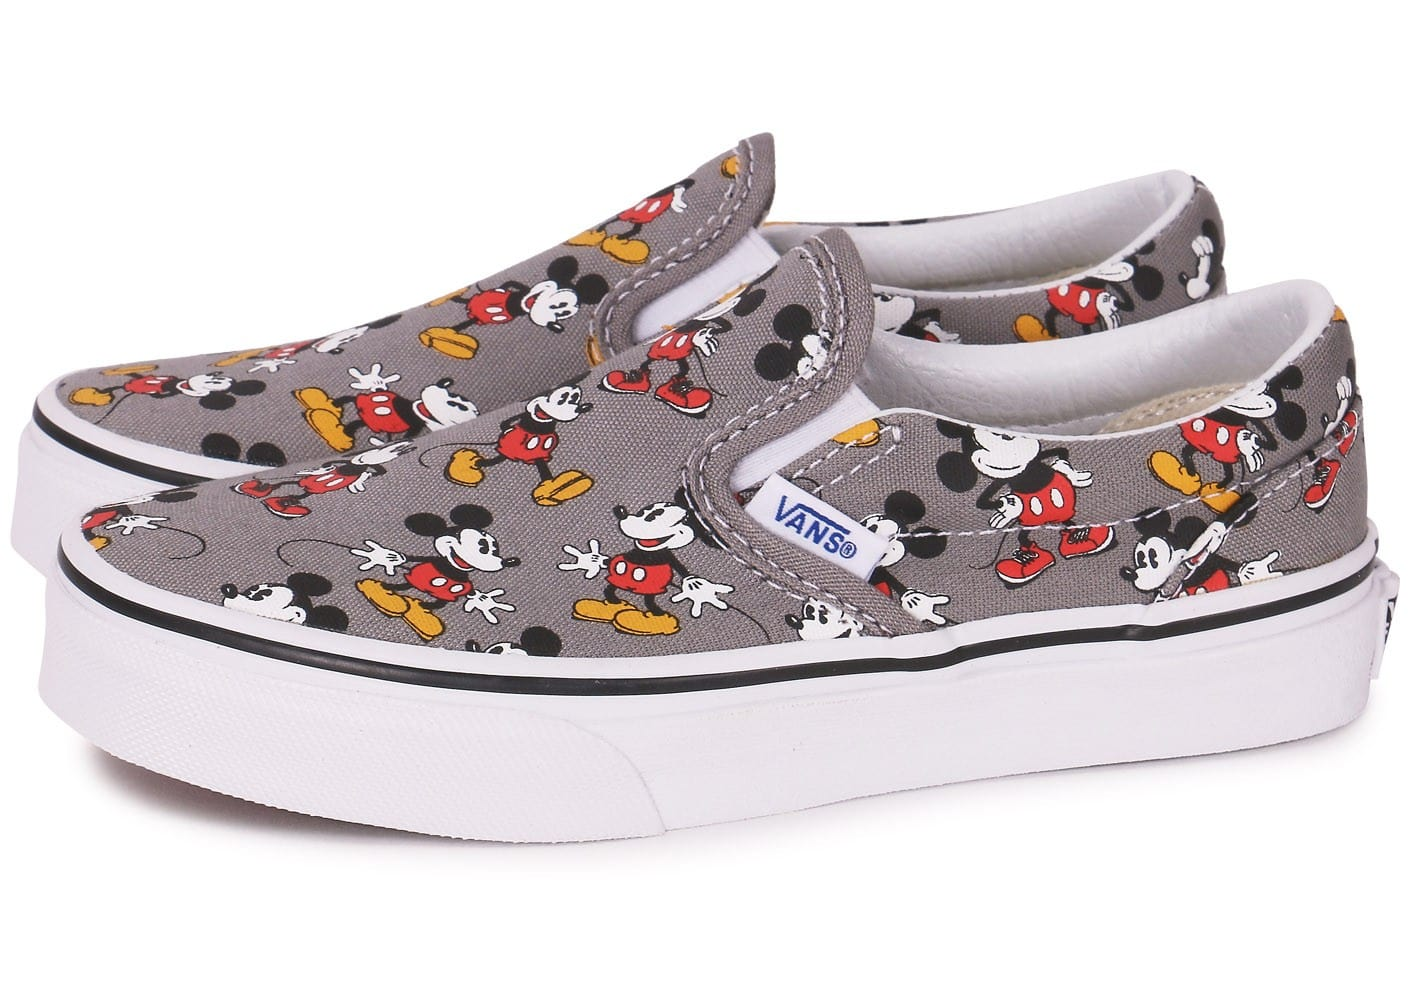 Chaussures Grise On Enfant Slip Disney Vans Mickey Classic g7w0U0